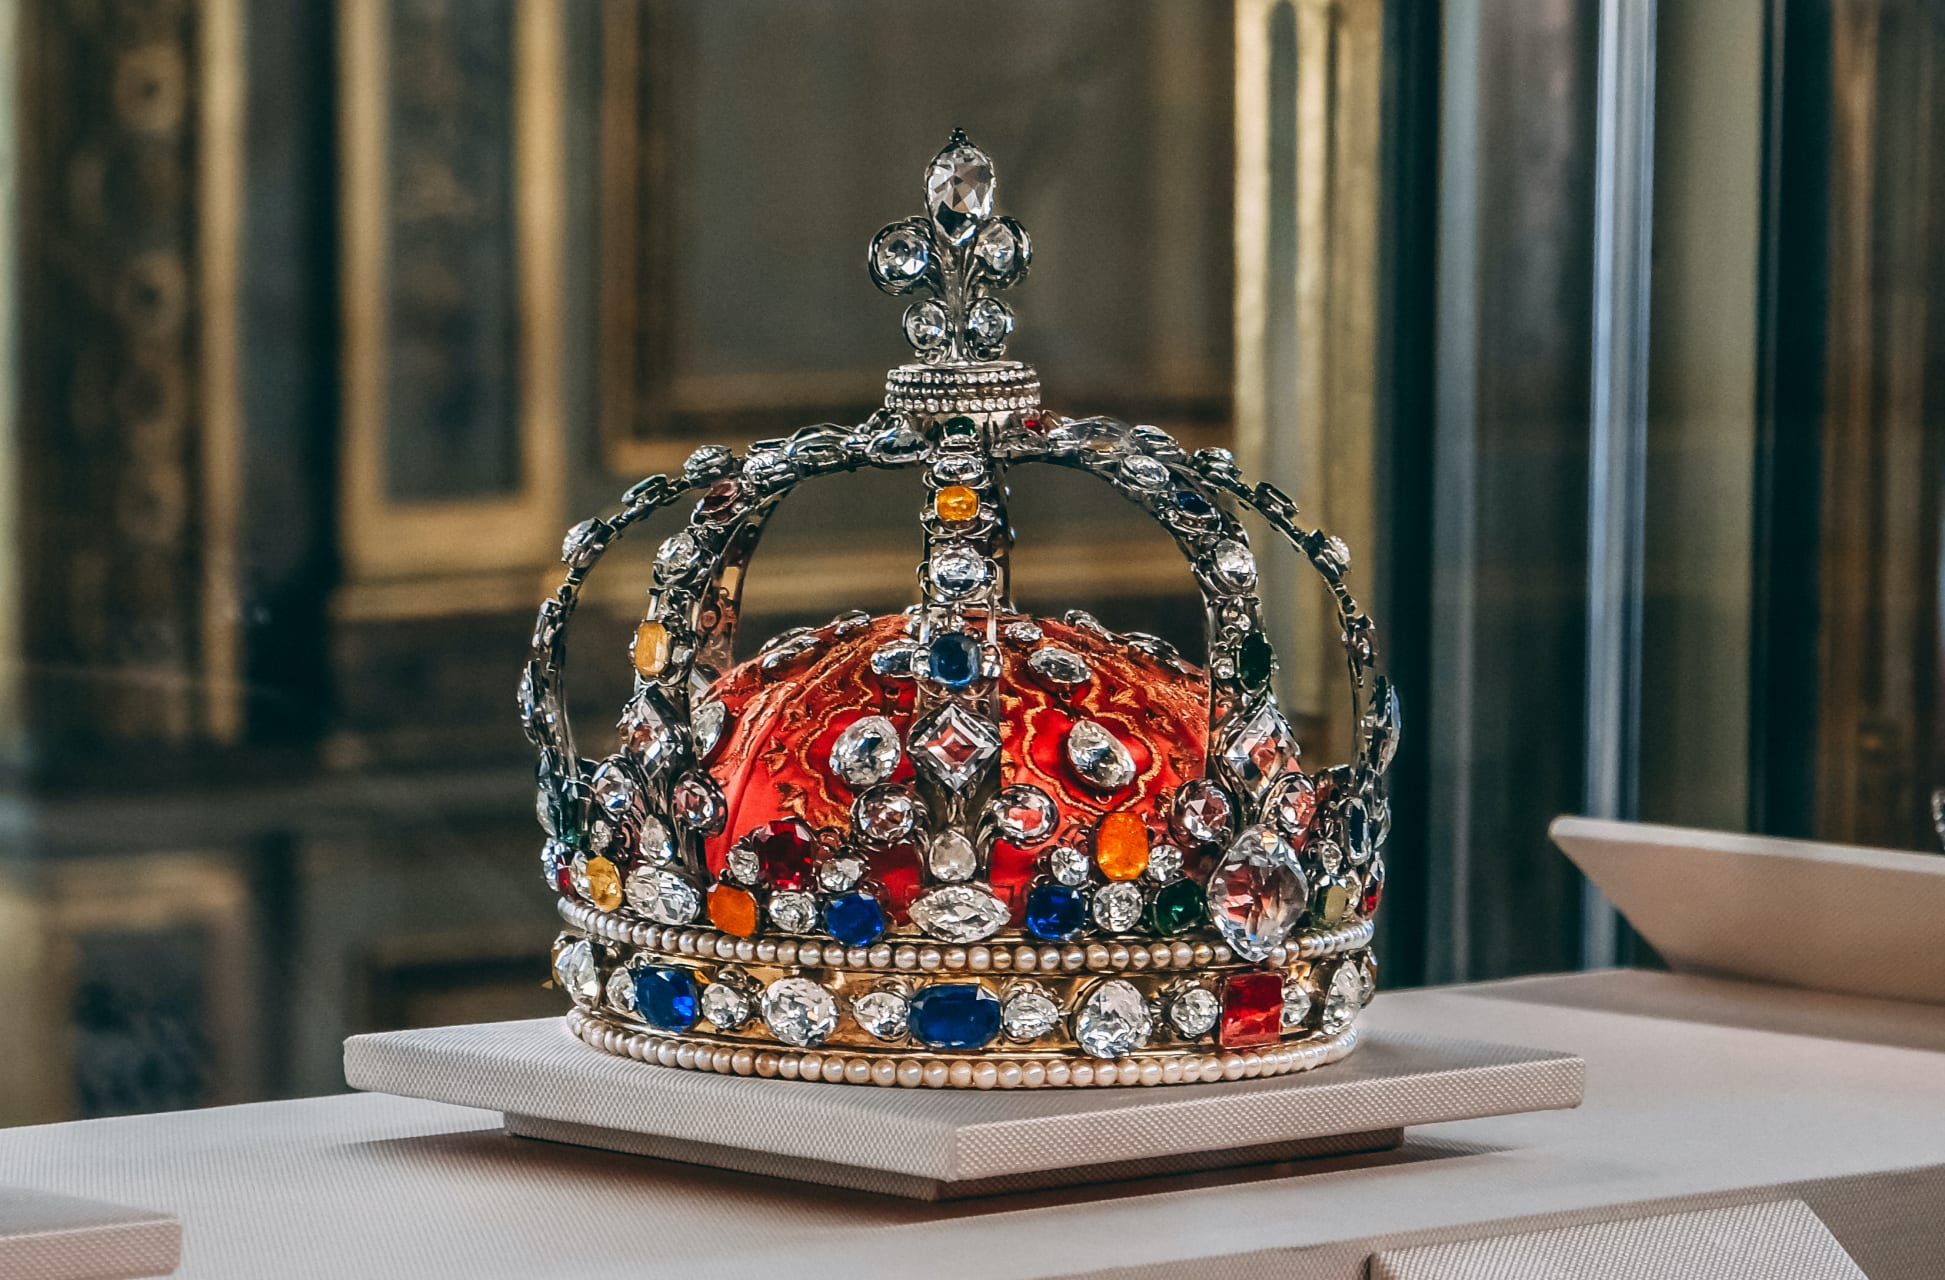 Paris - LOUVRE : The Crown Jewels and the Apollo Gallery